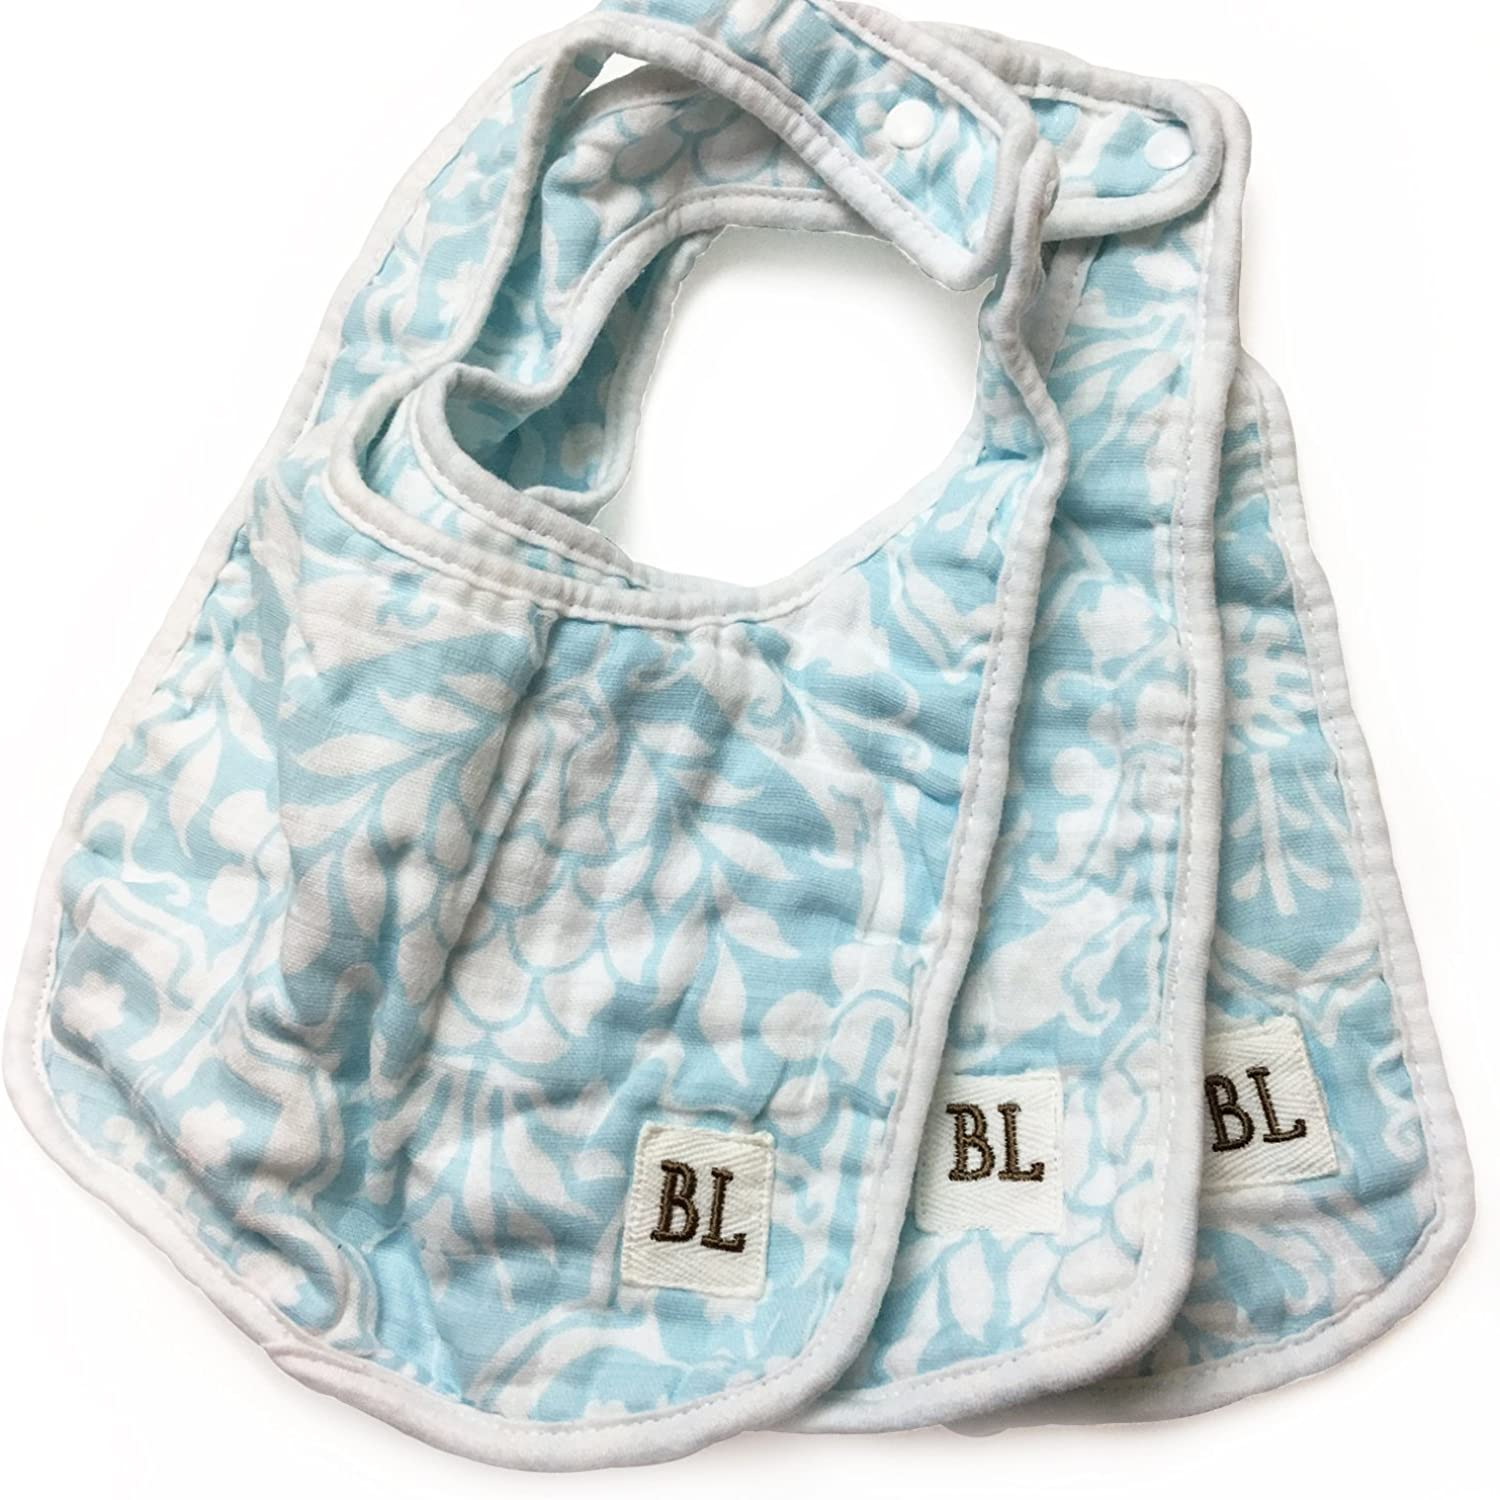 Bambino Land Omaha Mall Bibs 3 Floral Blue Pack Max 48% OFF -